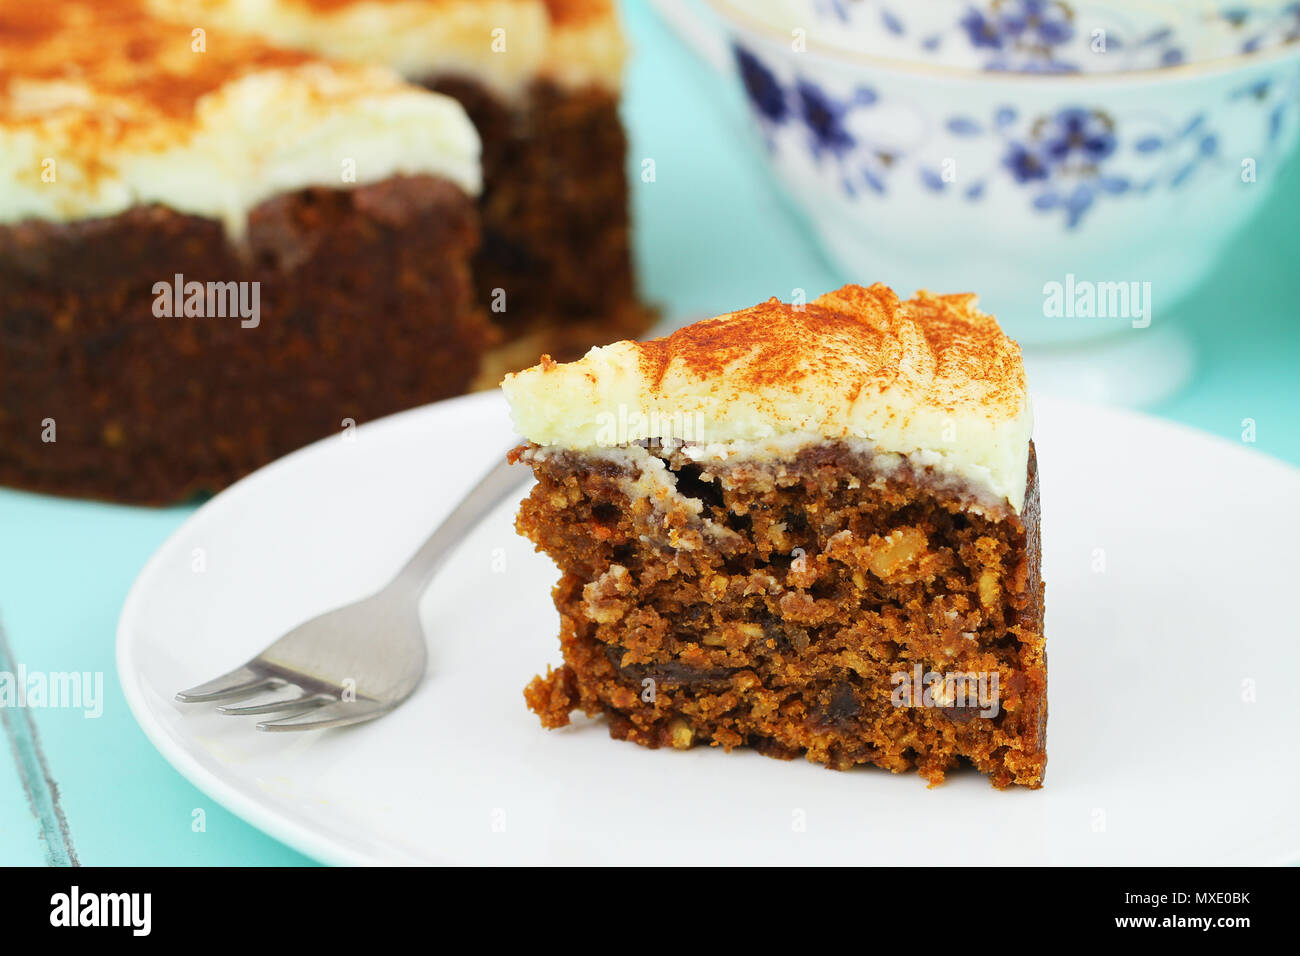 Slice of delicious carrot cake with marzipan icing on white plate Stock Photo